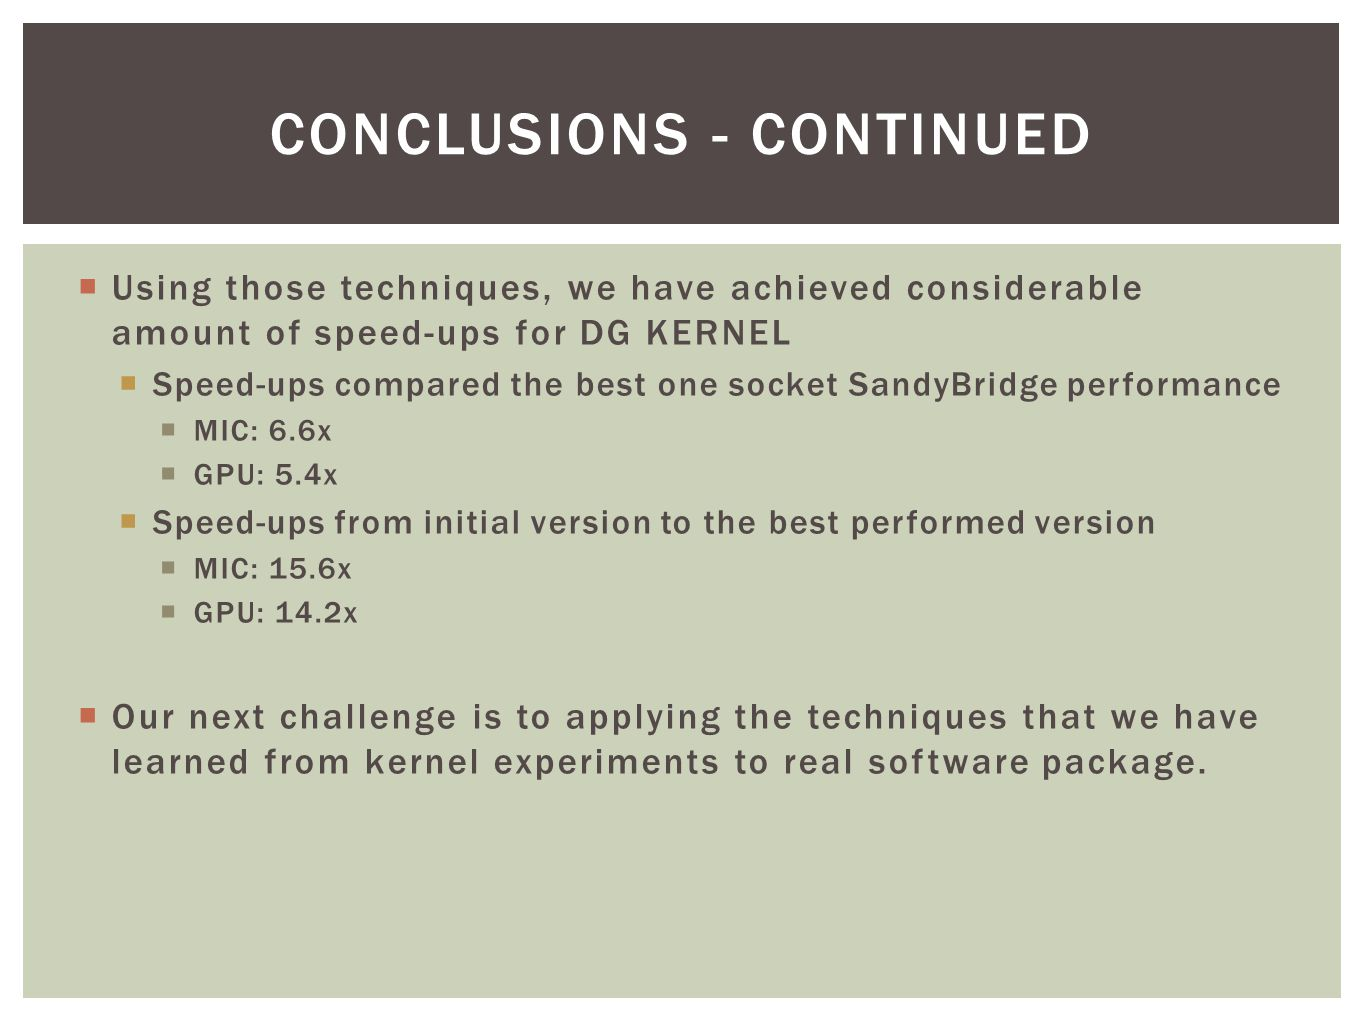  Using those techniques, we have achieved considerable amount of speed-ups for DG KERNEL  Speed-ups compared the best one socket SandyBridge perform